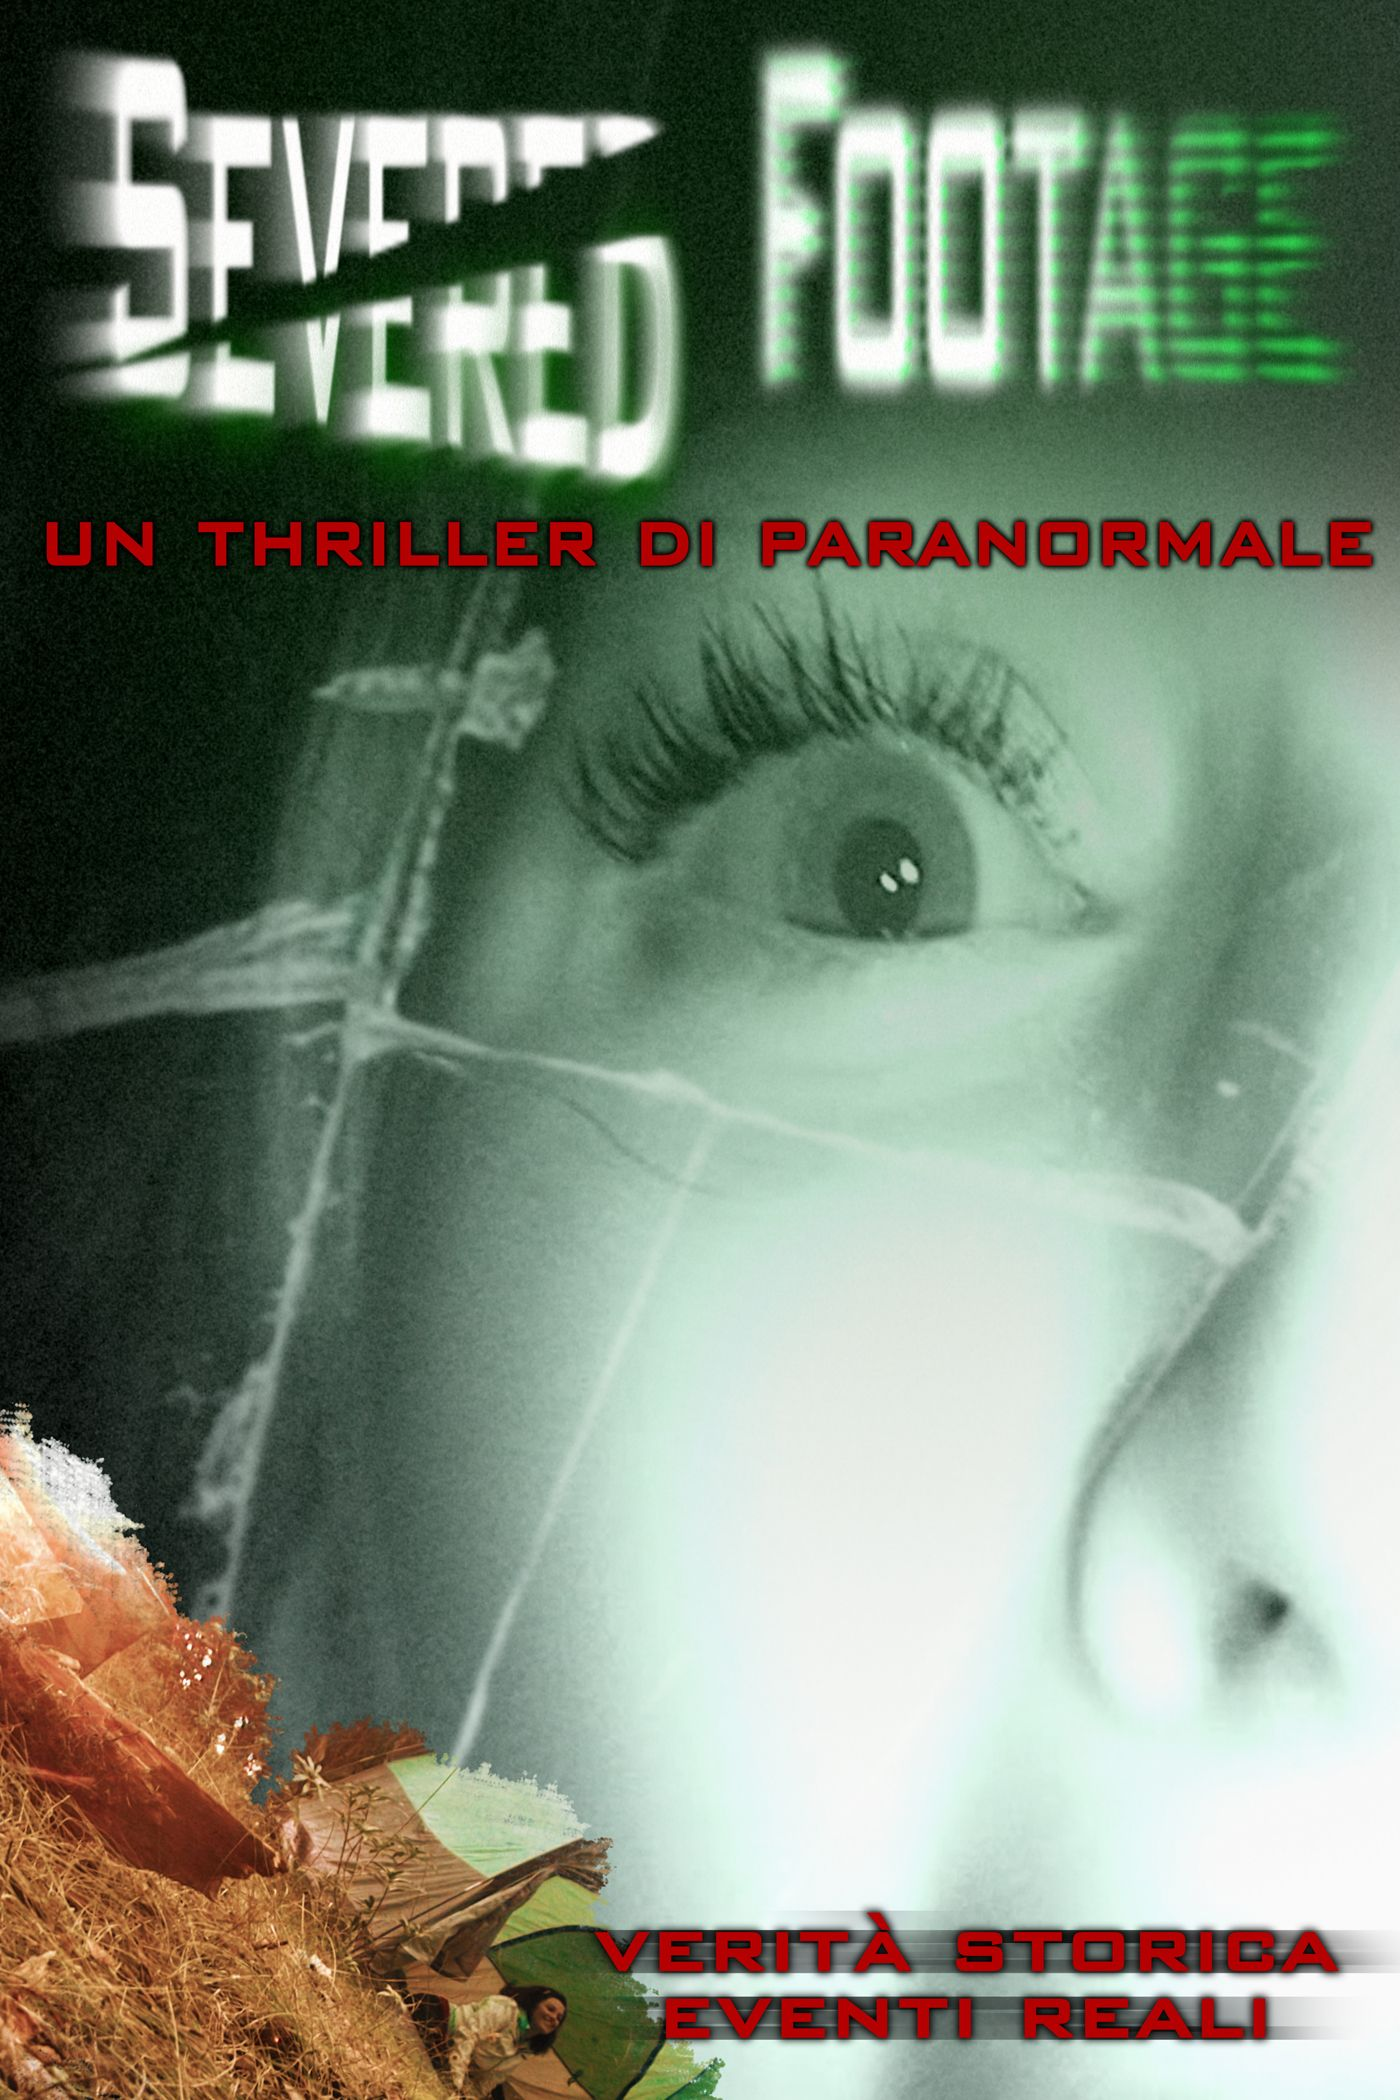 "Il film ""Severed Footage"" è ora disponibile con sottotitoli in italiano. Godetevi questo thriller paranormale. https://vimeo.com/ondemand/thrillerdieparanormale"